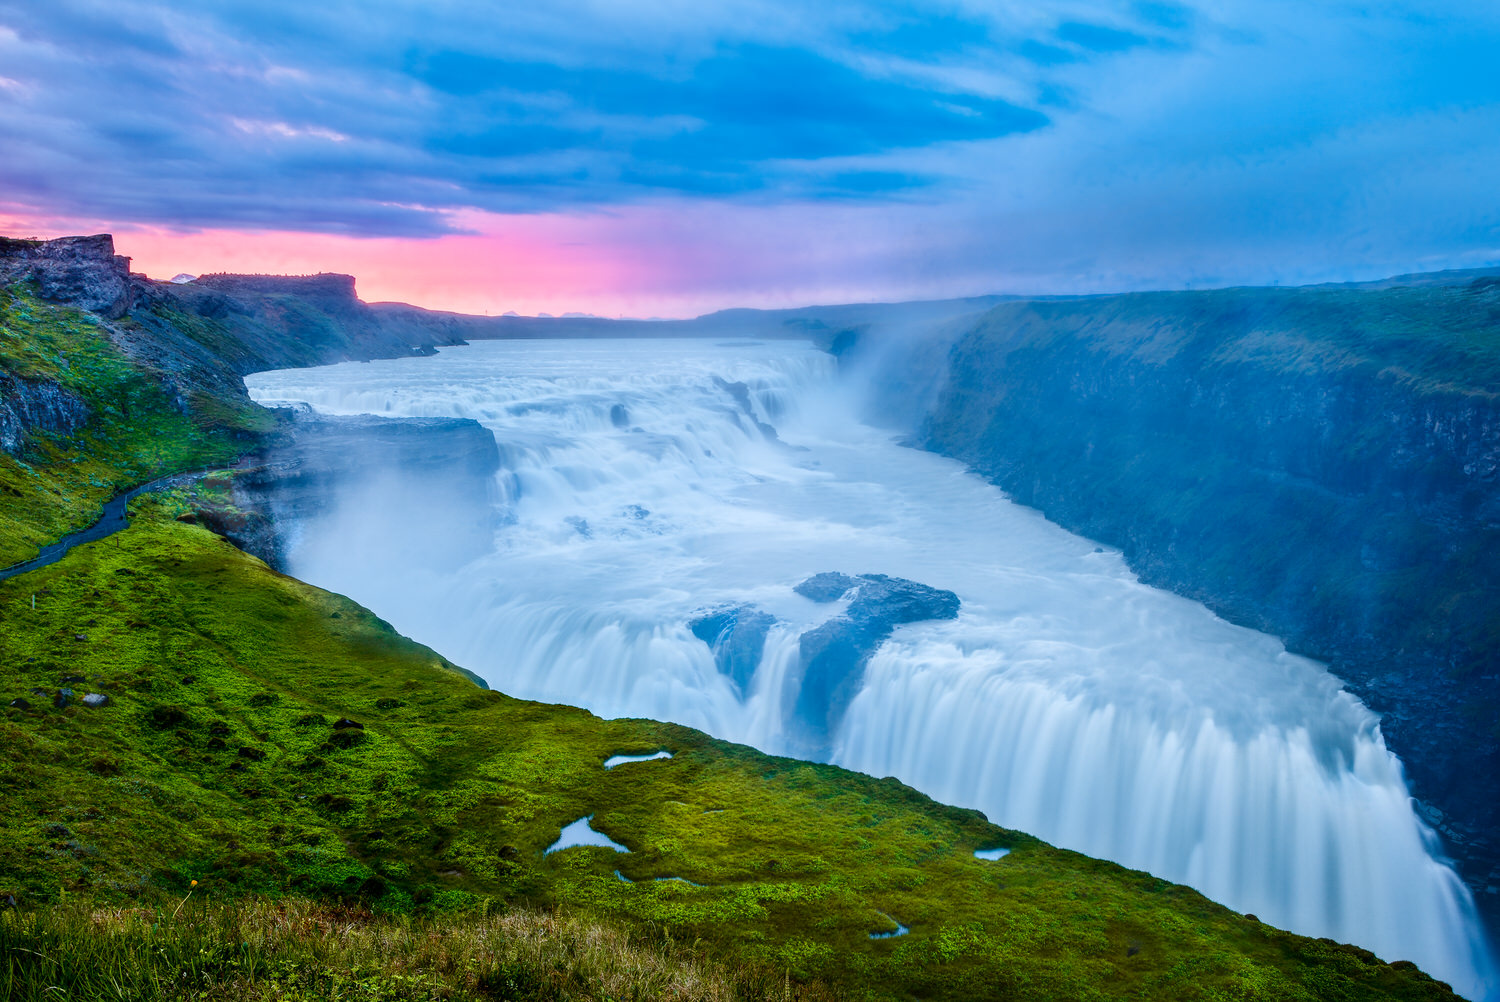 The spectacular    Gullfoss waterfall    in Southern Iceland photographed, through the mist, during the afterglow that followed a beautiful sunset.